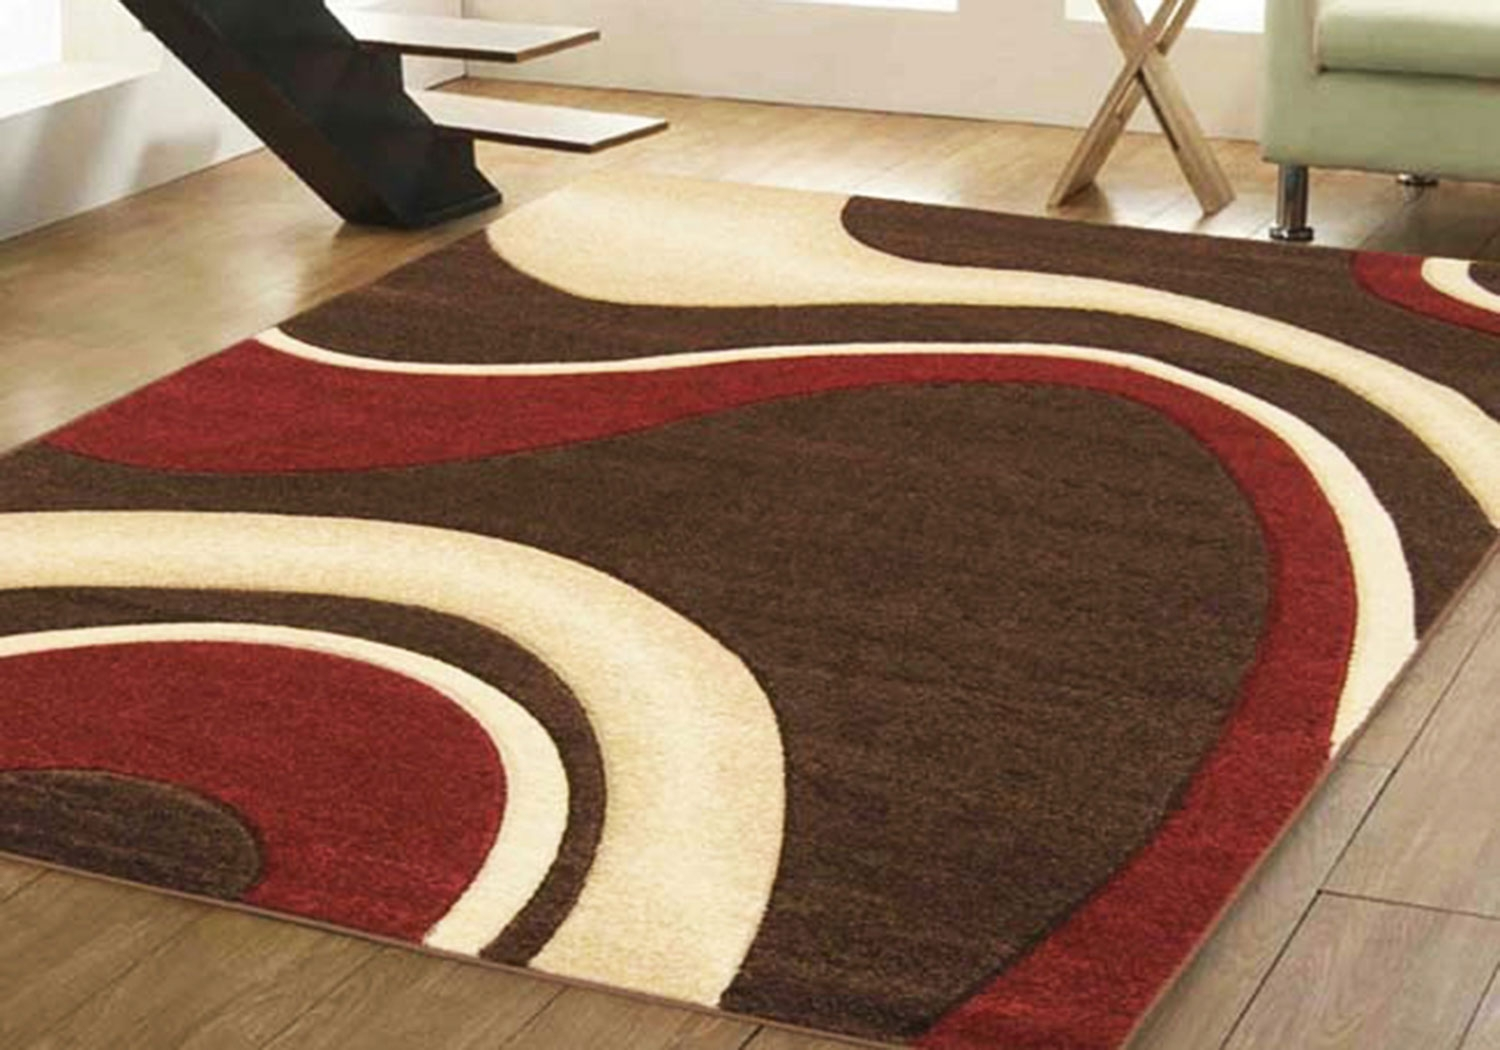 Small Extra Large Modern Brown Blue Green Red Swirl Design Throughout Large Red Rugs (Image 11 of 15)